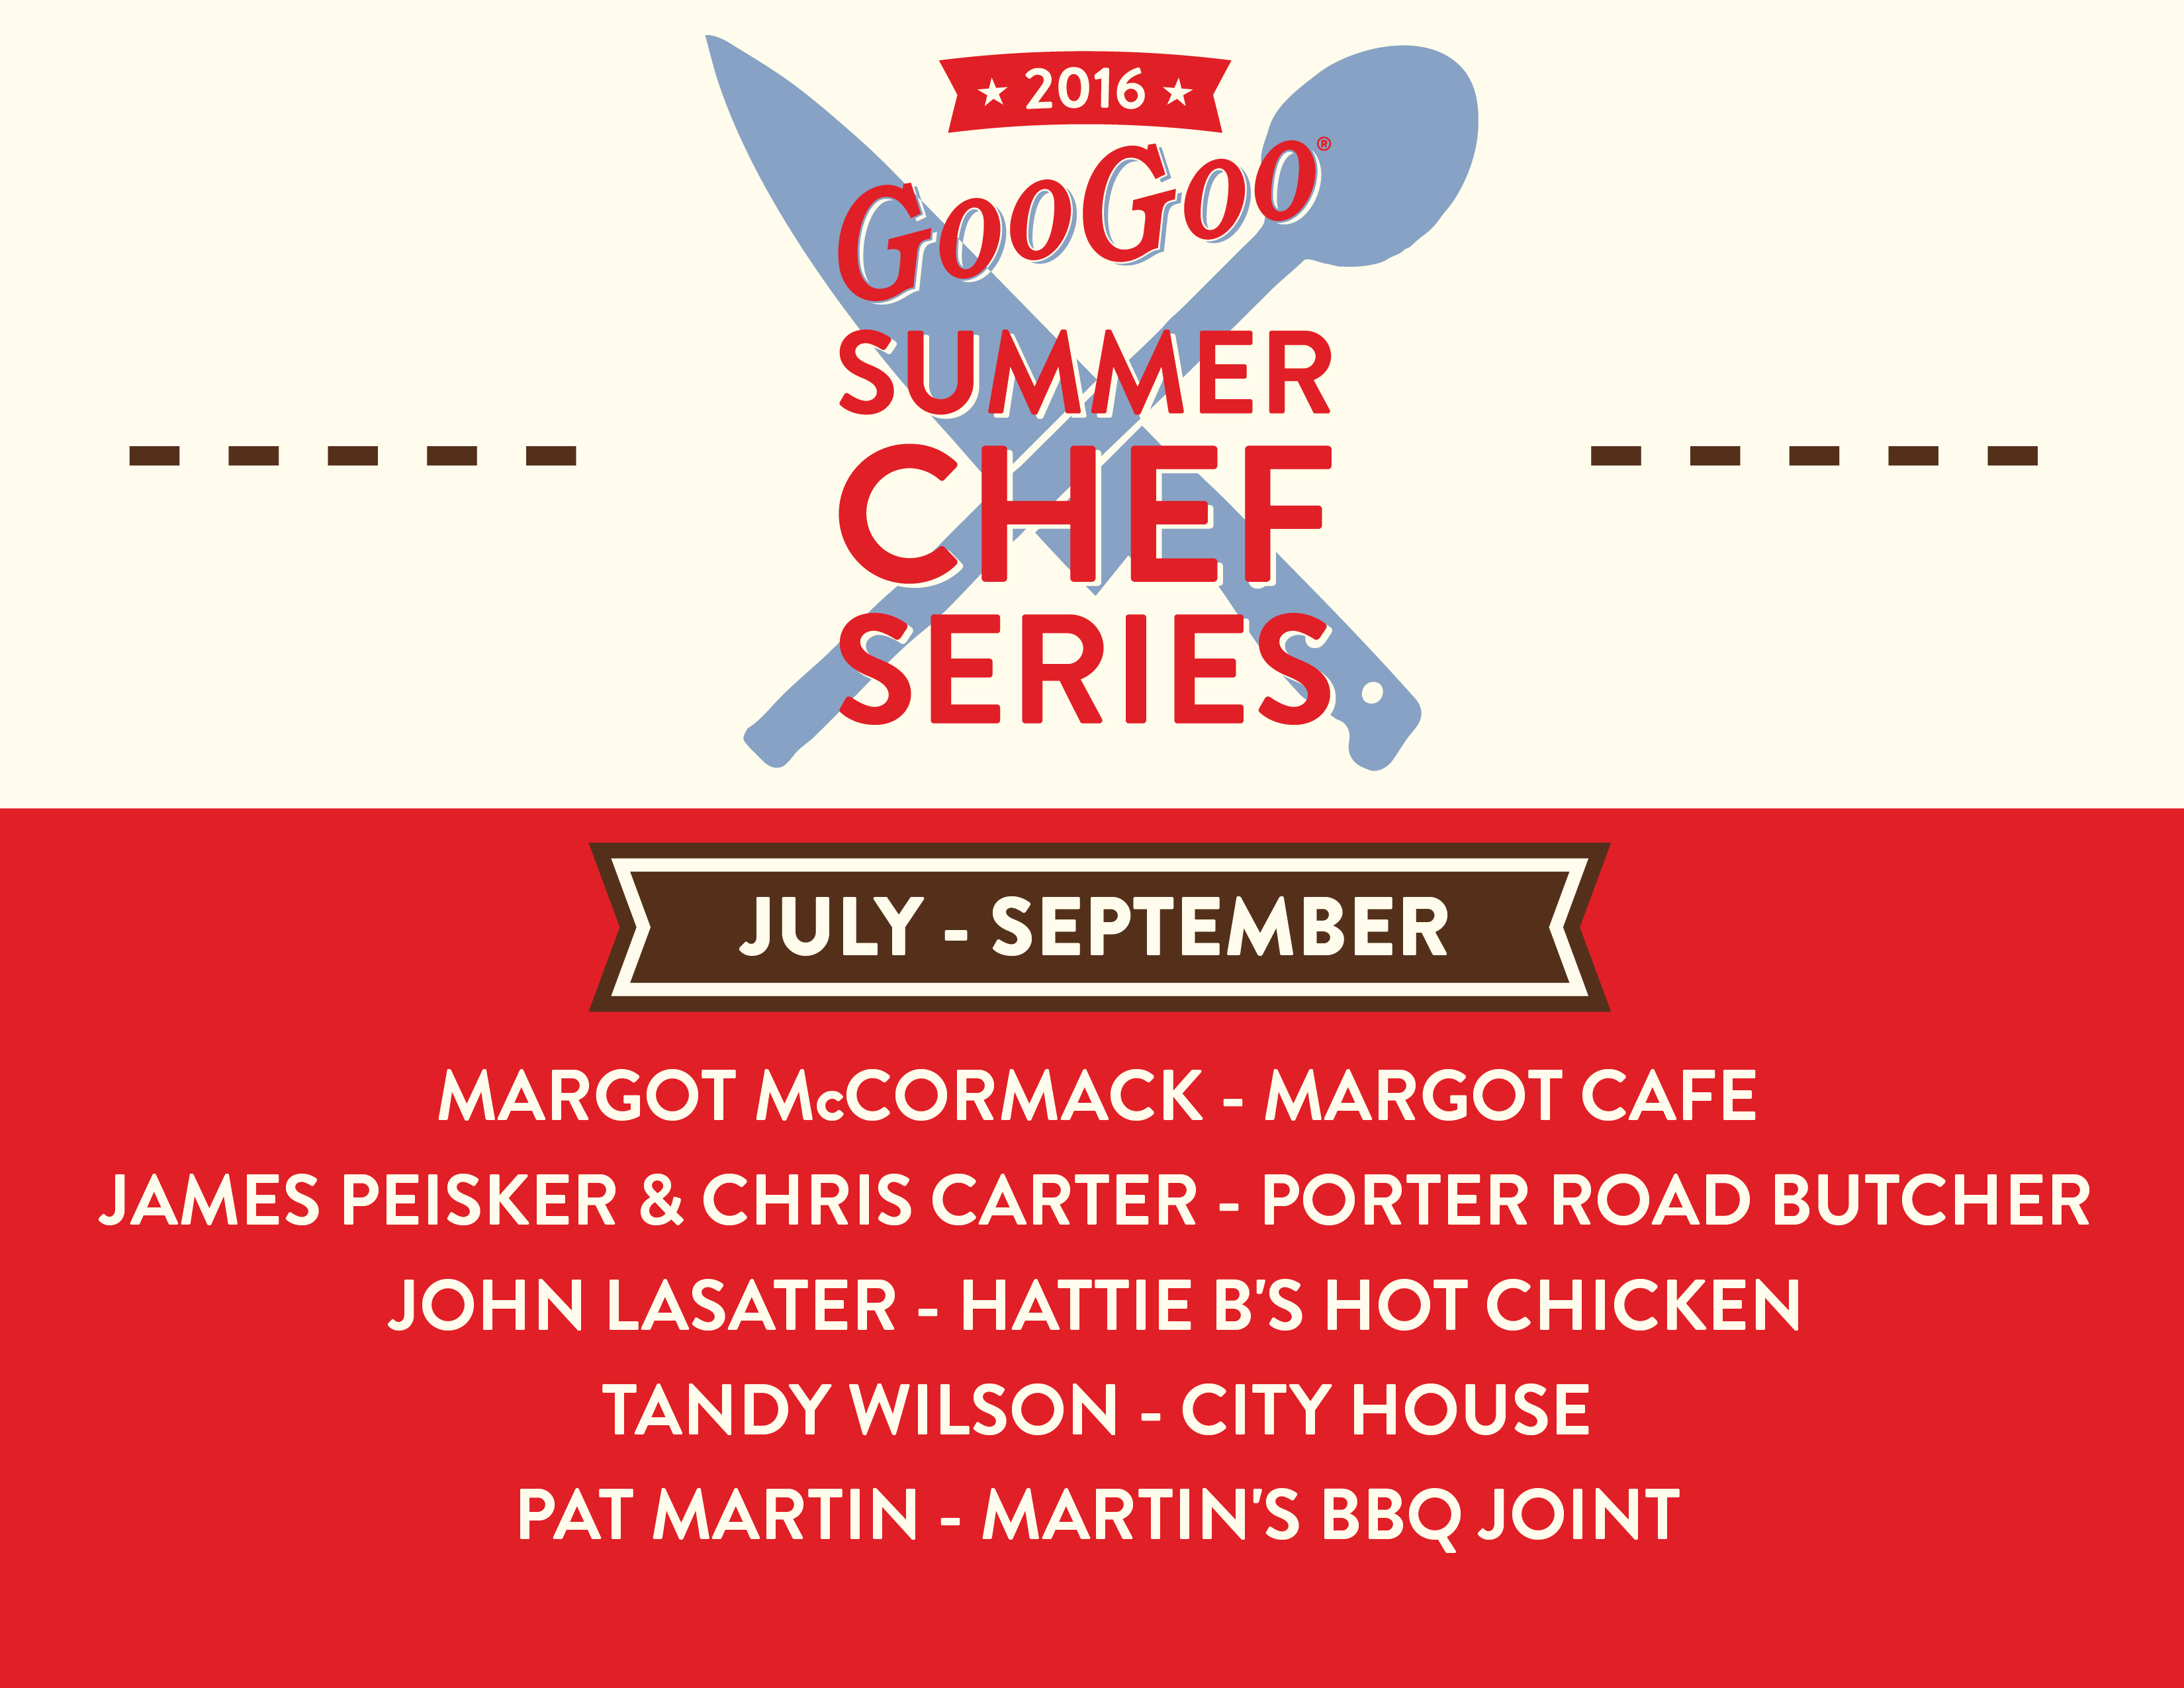 Goo Goo Summer Chef Series 2016 Image